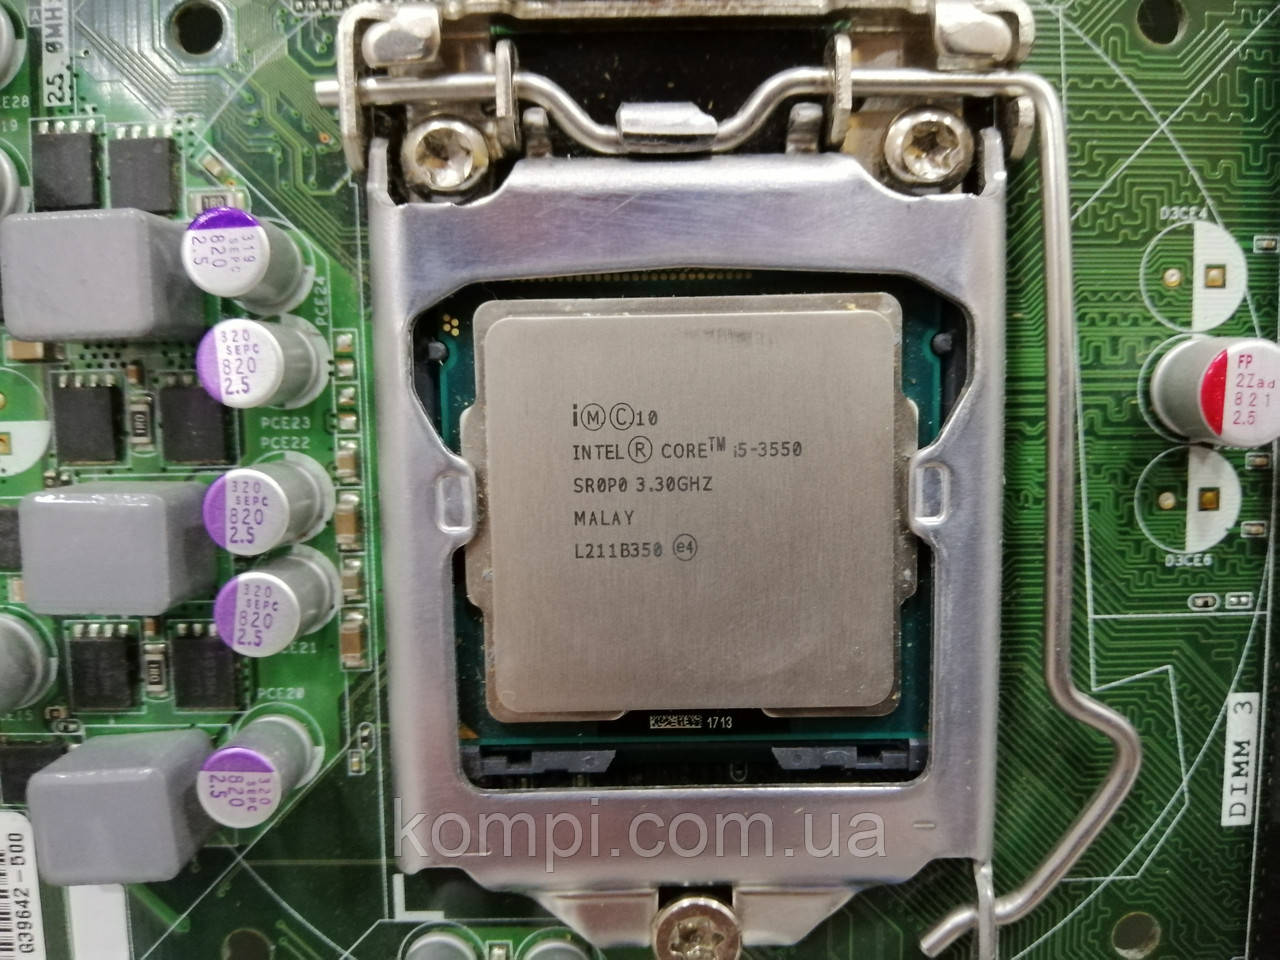 Процессор Intel Core i5-3550 Processor (6M Cache,3.3Ghz  up to 3.70 GHz) s1155